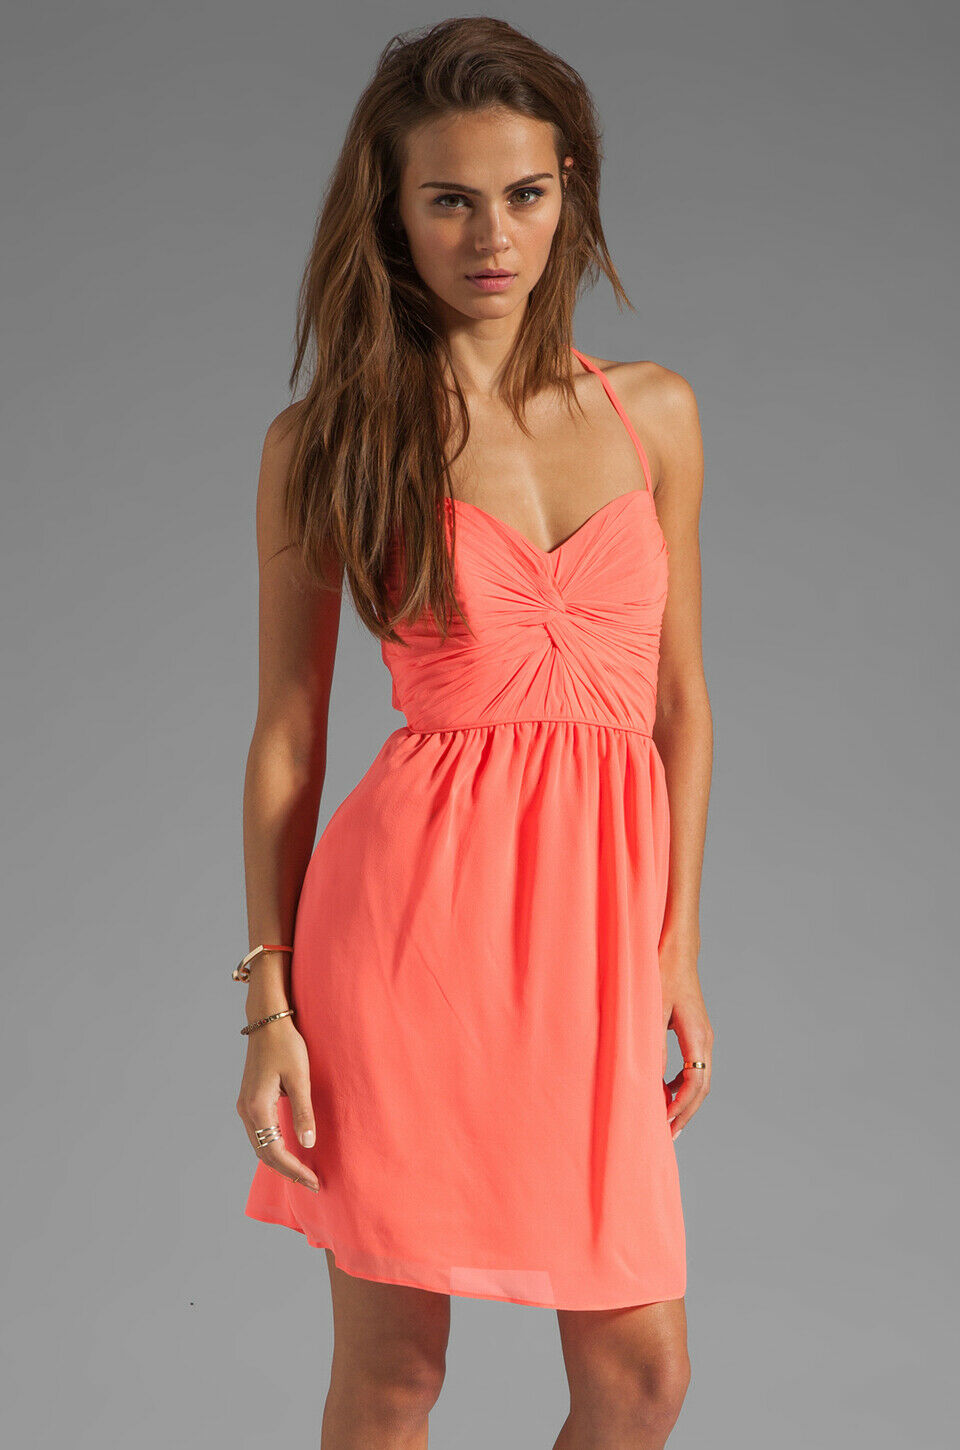 Shoshanna Neon Rosa Silk Crossback Twist Front Carine Party Cocktail Dress Sz 6